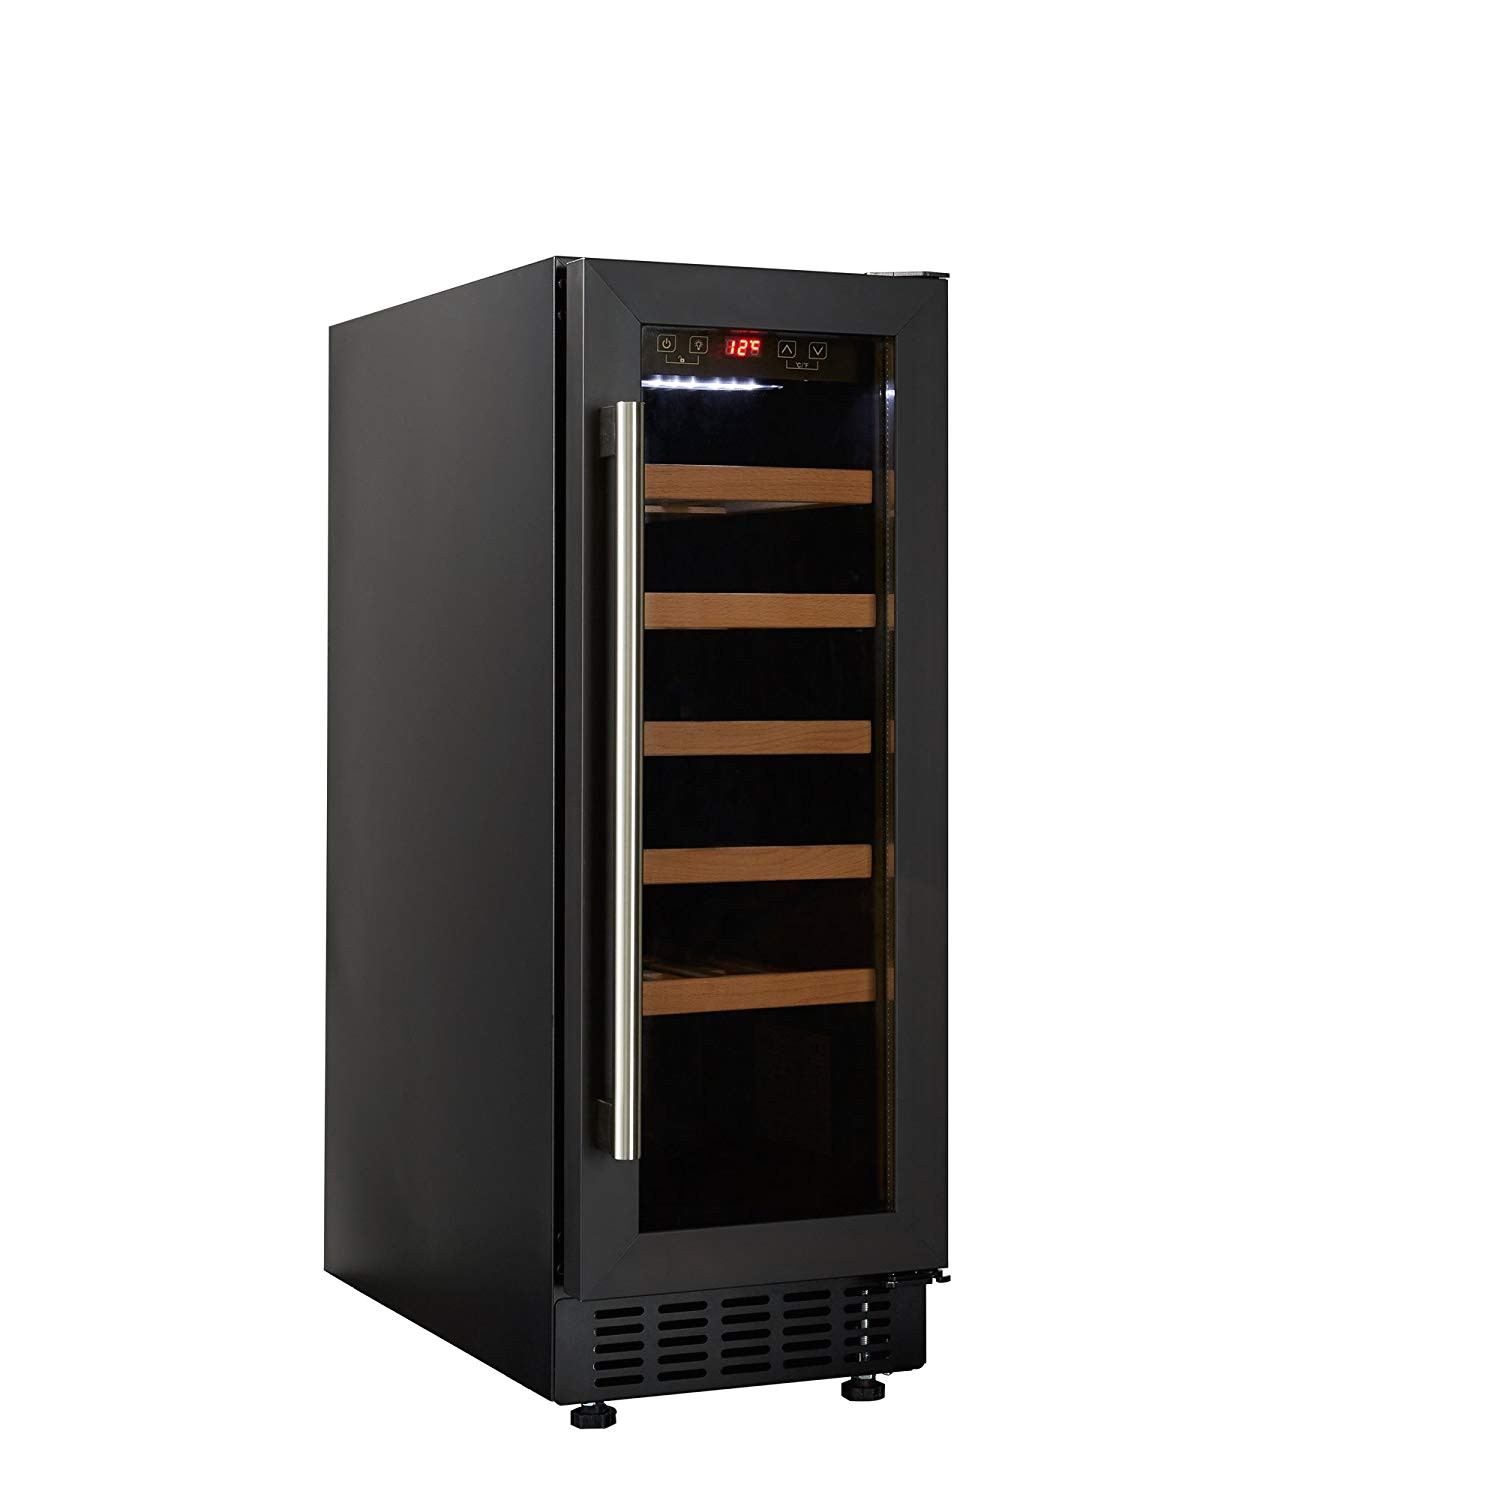 cookology cwc300bk 30cm wine cooler in black 20 bottle capacity freestanding undercounter fridge amazon co uk large appliances